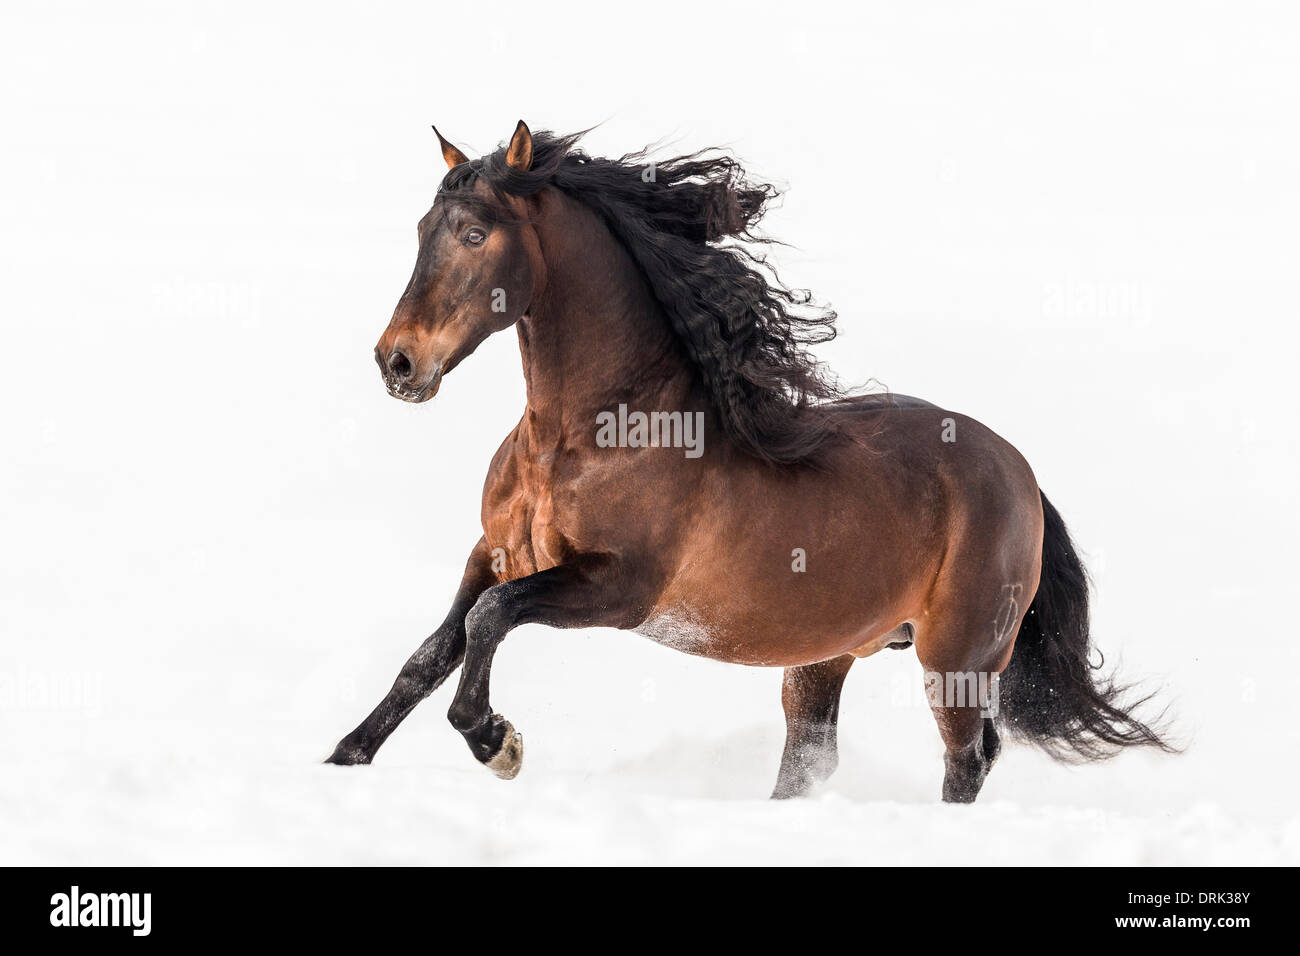 Pure Spanish Horse Andalusian Bay stallion galloping in snow Germany - Stock Image